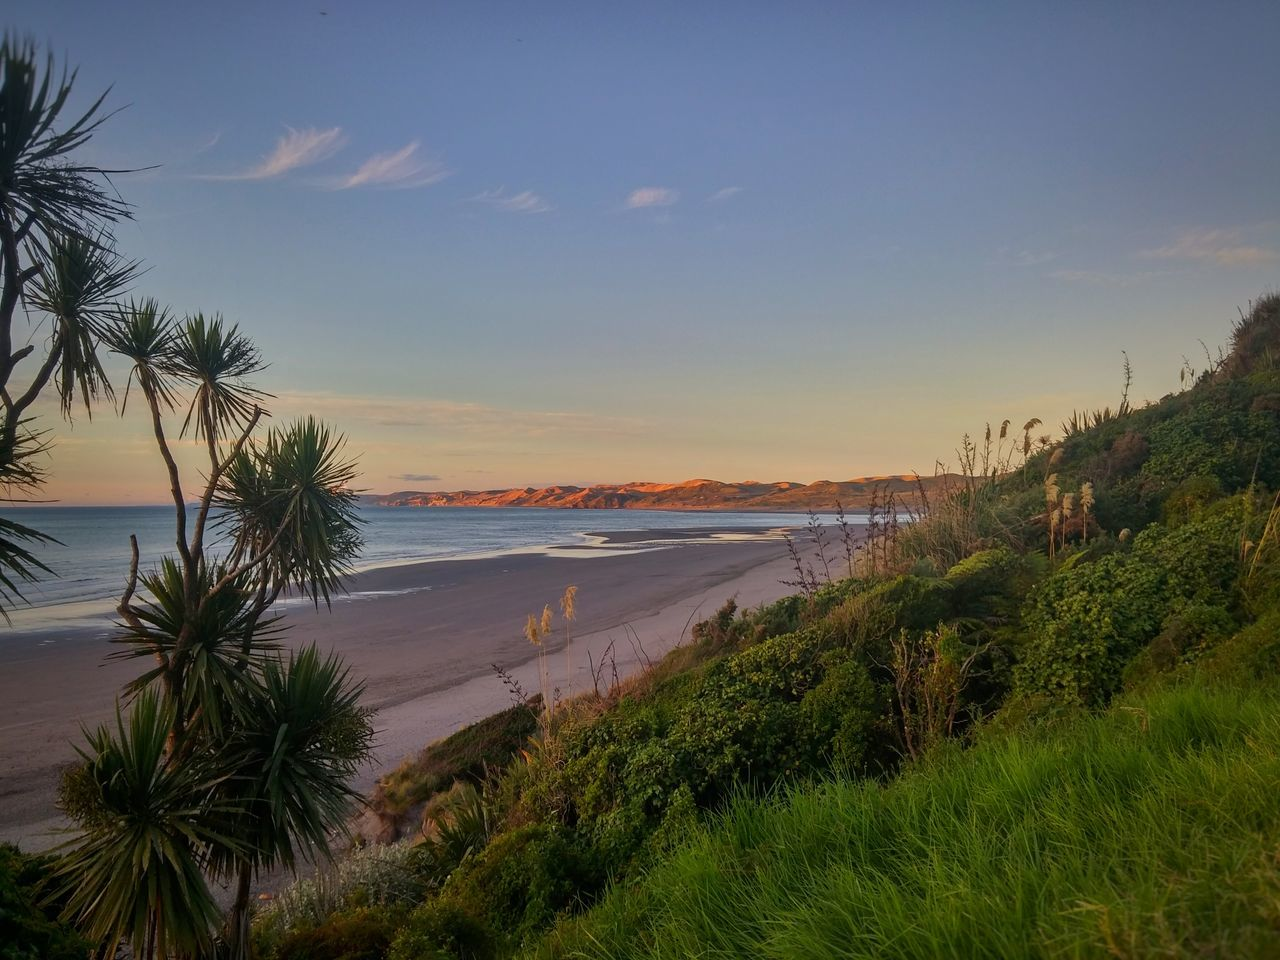 😍all to myself😍Magic Hour Dusk Travel Destinations Outdoor Photography The Great Outdoors - 2016 EyeEm Awards Elevated View Tranquil Scene My Point Of View Raglan Nz New Zealand Landscape The KIOMI Collection Breathtaking View Nature Ocean Beach Cabbage Tree Colour Image Lifes A Beach Showcase March West Coast Wild Swimming Surfing Boogieboarding Landscapes With WhiteWall